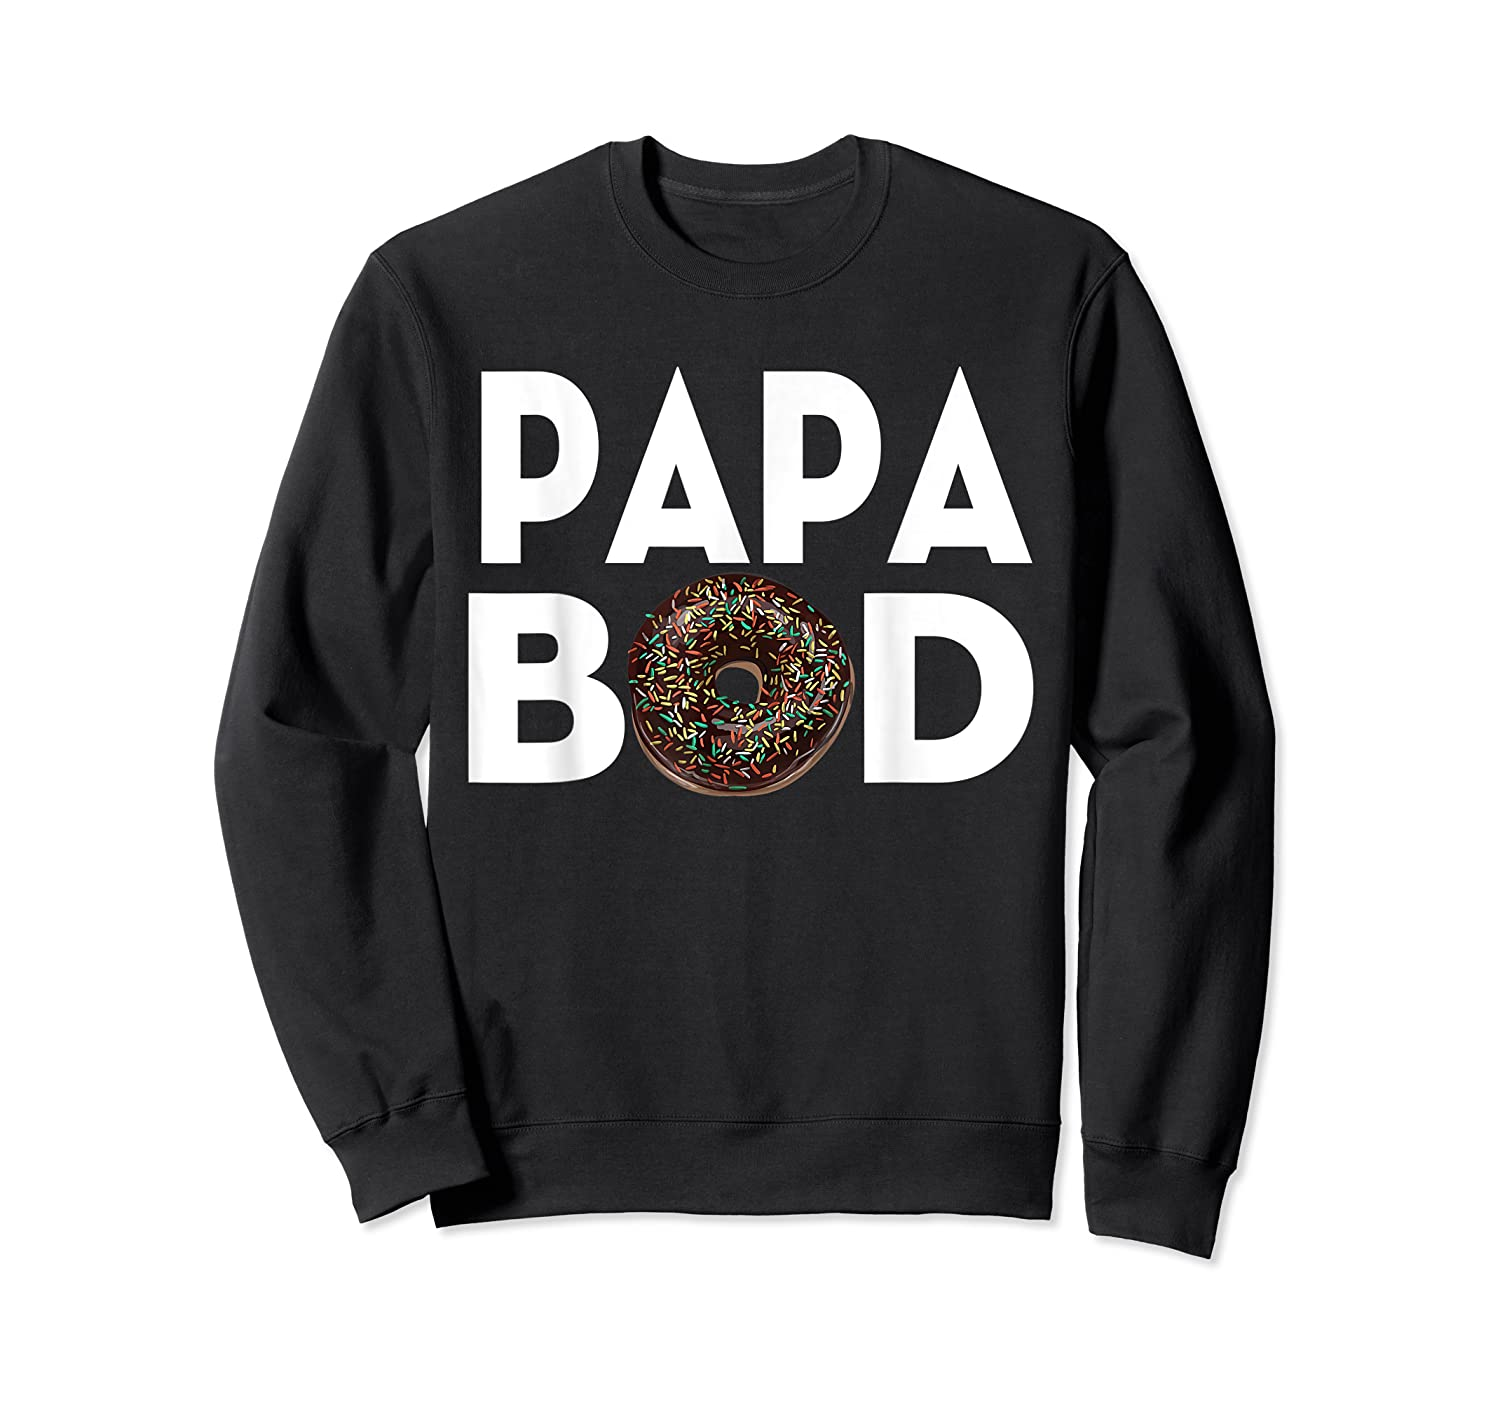 S Donut Papa Bod T Shirt Funny Father S Day Gift Crewneck Sweater